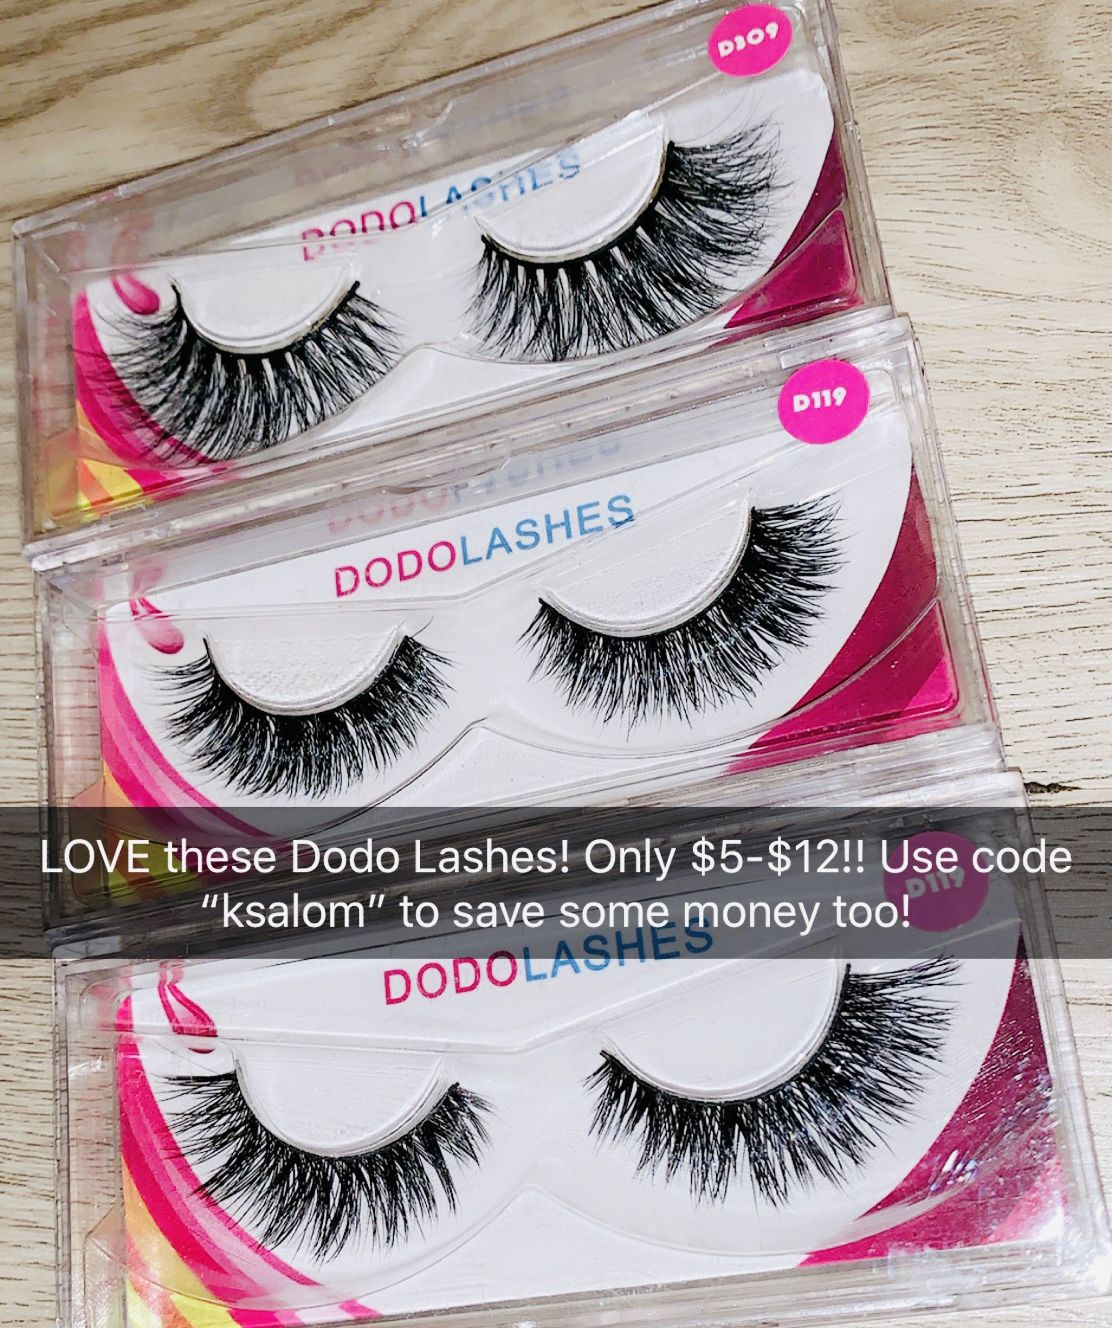 8e839e26721 Dodo Lashes are the best! They are only $5-$12 and you can use code